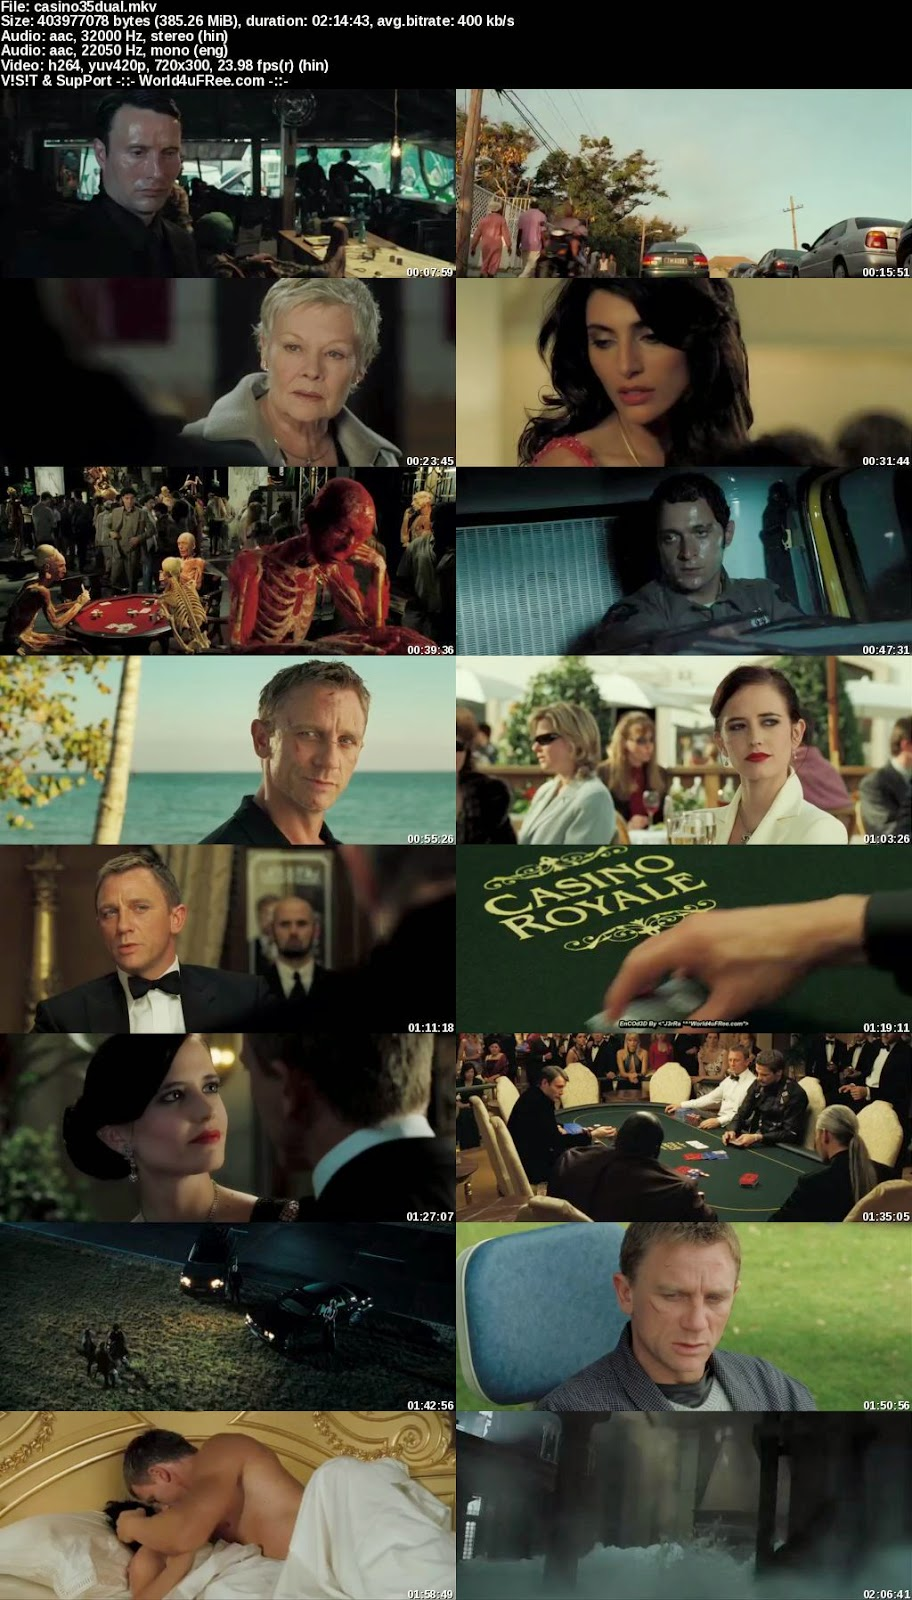 download casino royale in dual audio